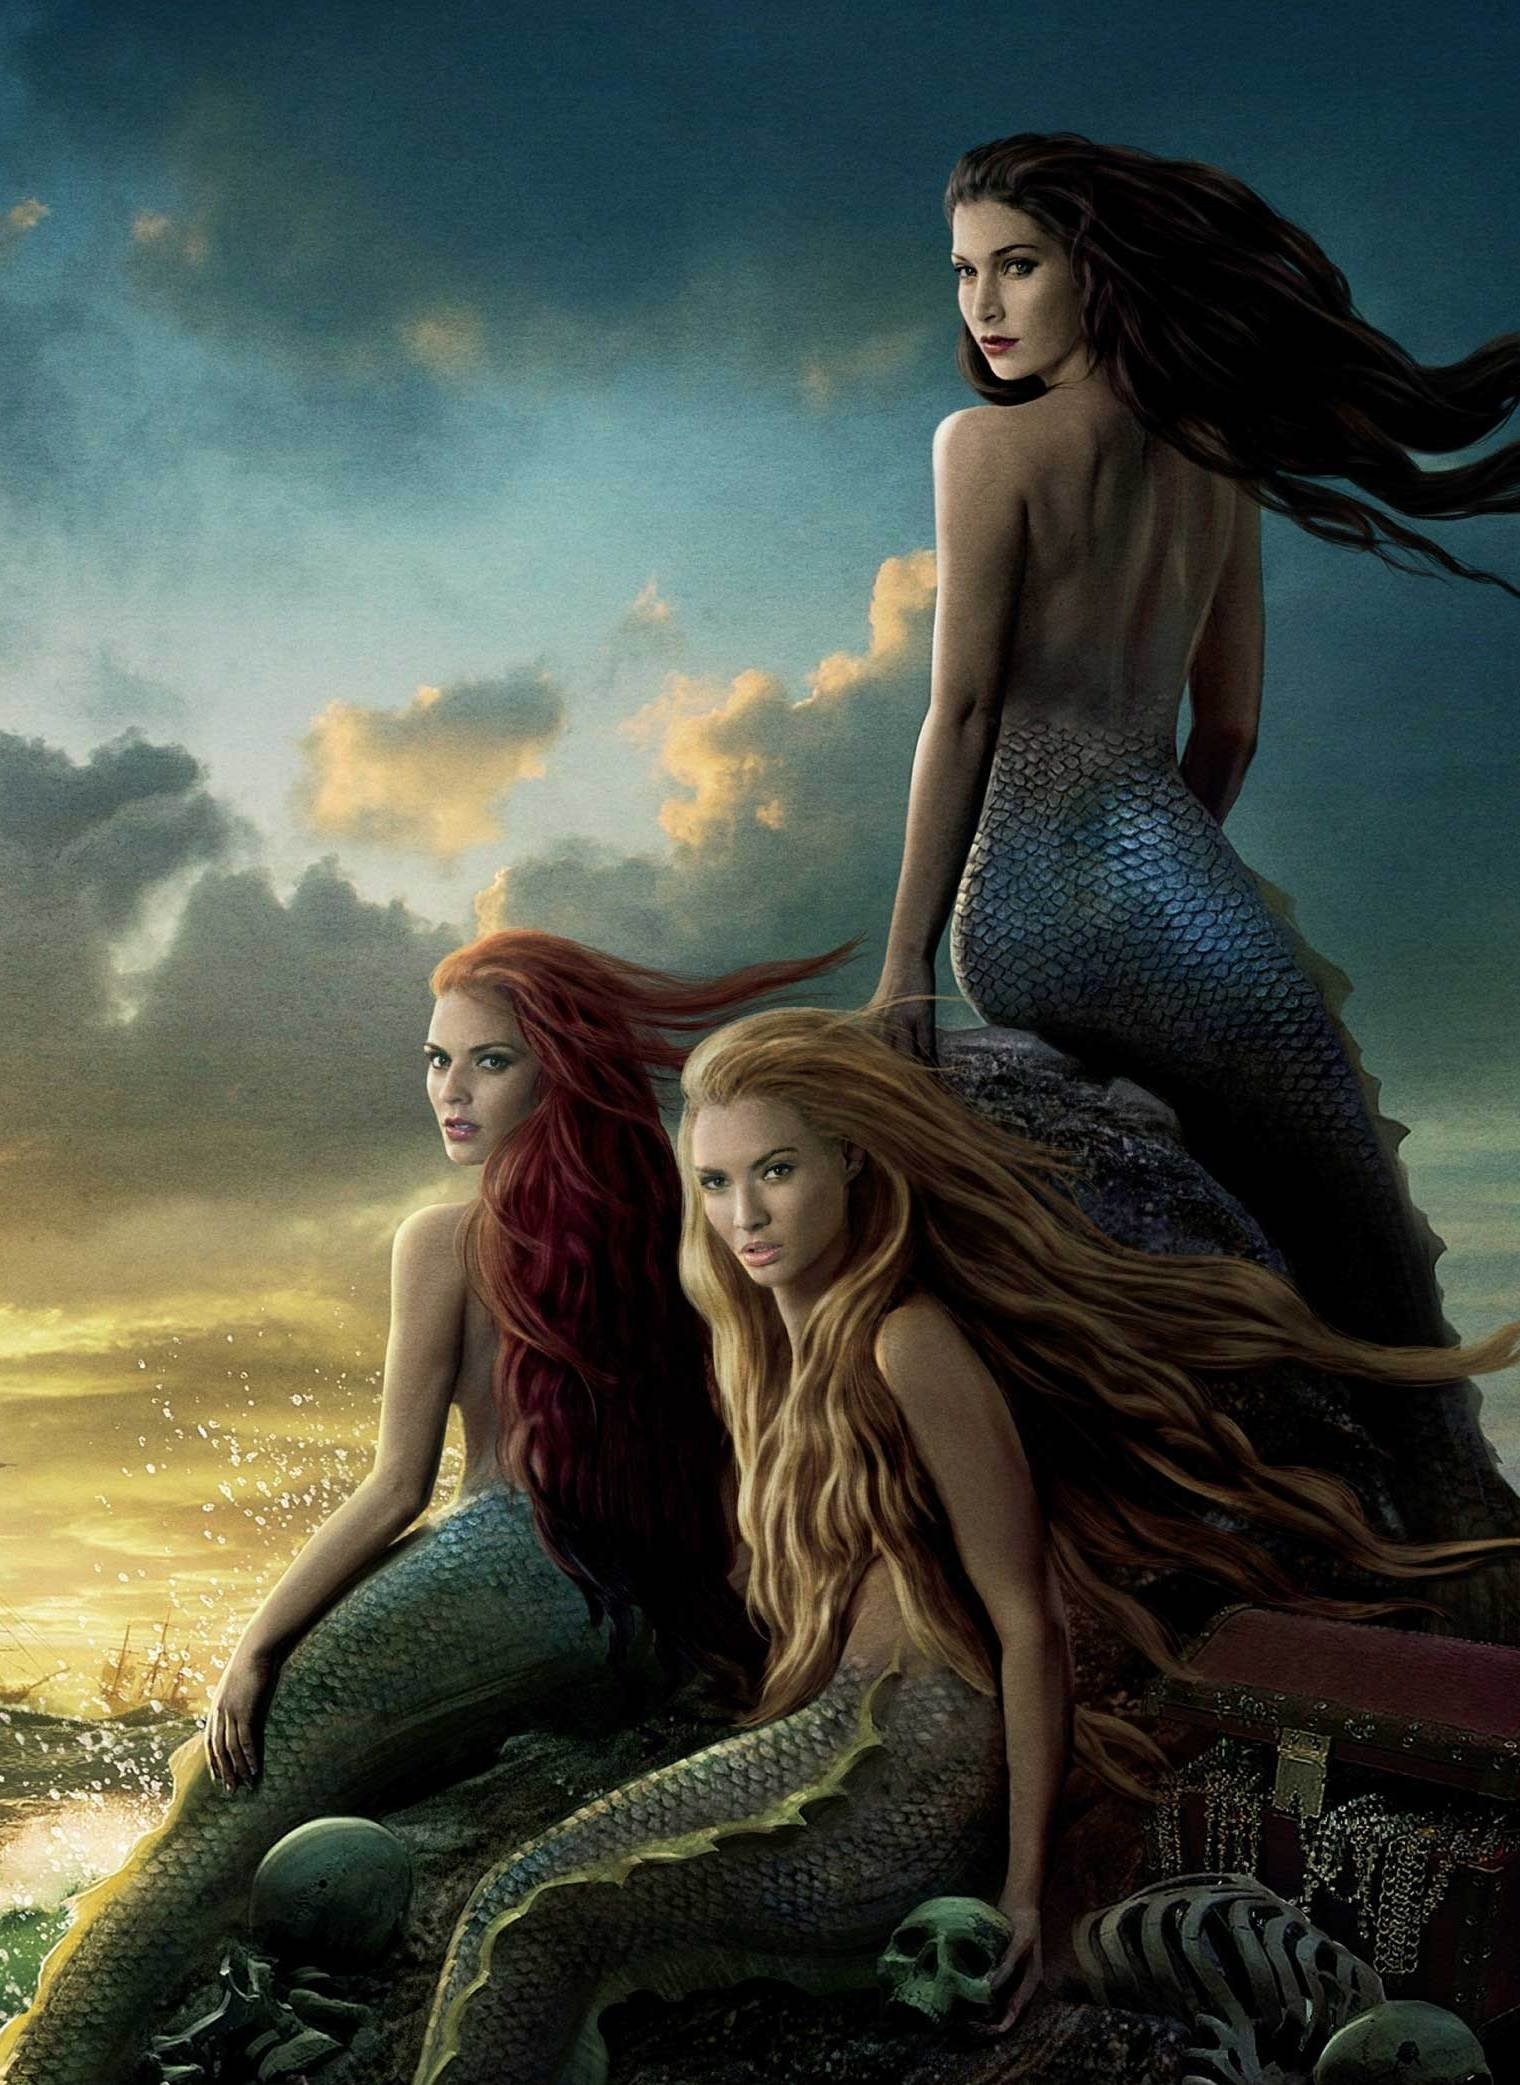 Mermaids with Scale Tails 698.88 Kb